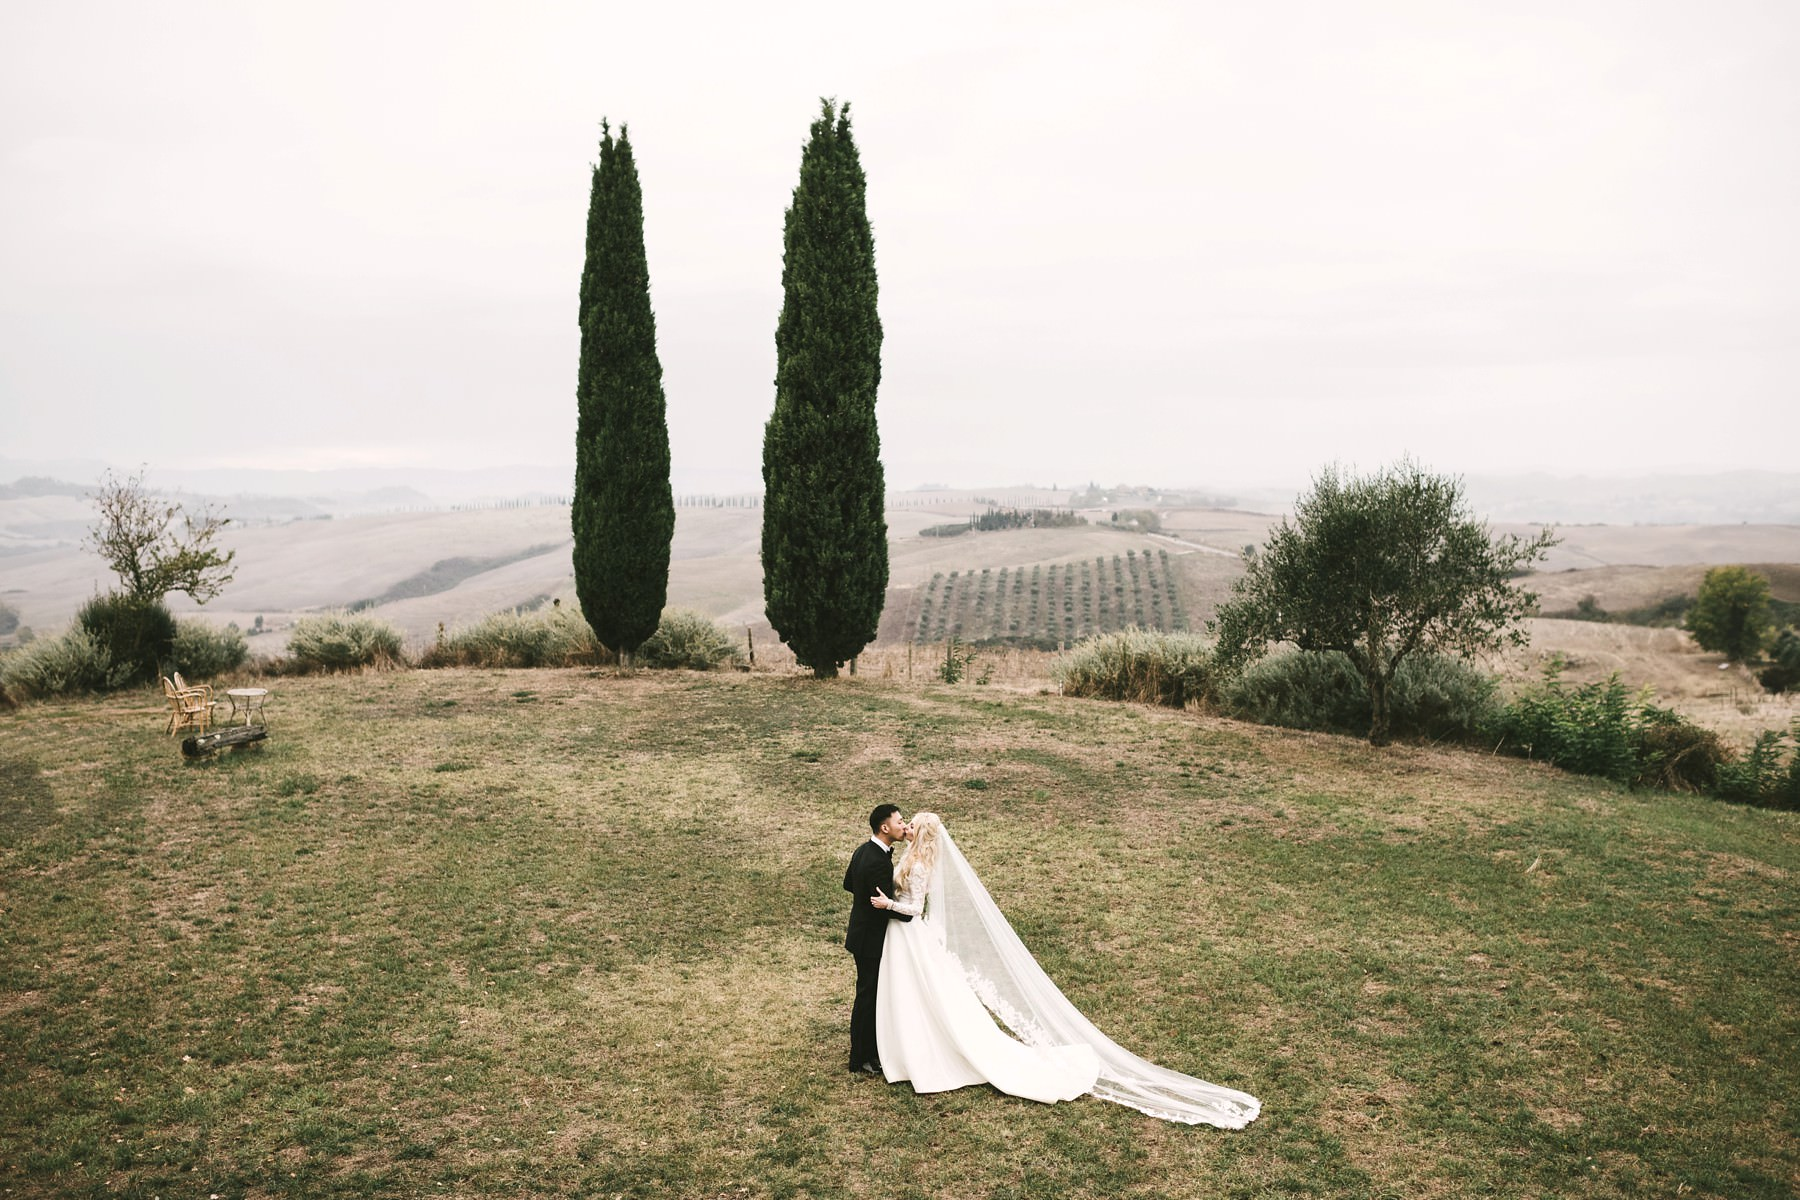 Bride groom wedding photo into the Tuscany Val D'Orcia countryside with evocative cypress trees